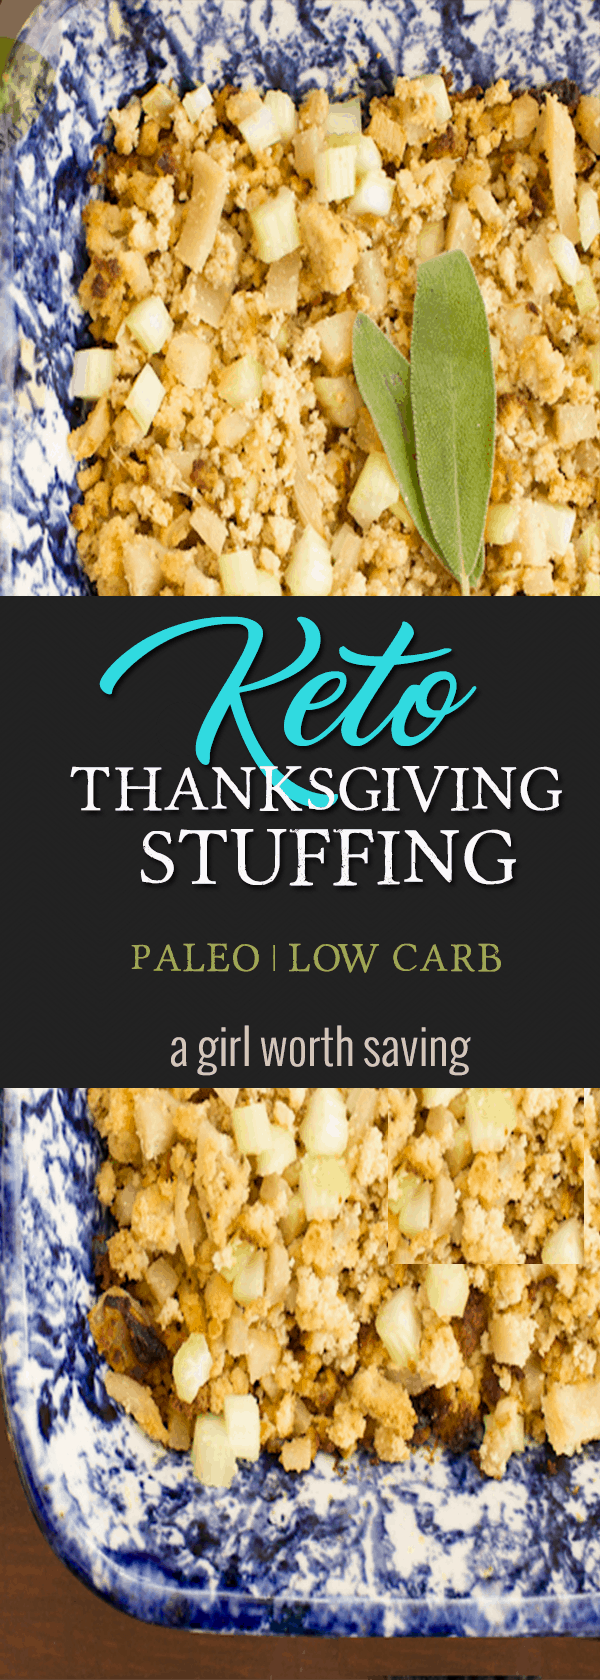 The quintessential Thanksgiving side dish is stuffing. Seriously, nothing soaks up gravy or cranberry-like dressing and this Keto Thanksgiving Stuffing will wow your tastebuds.